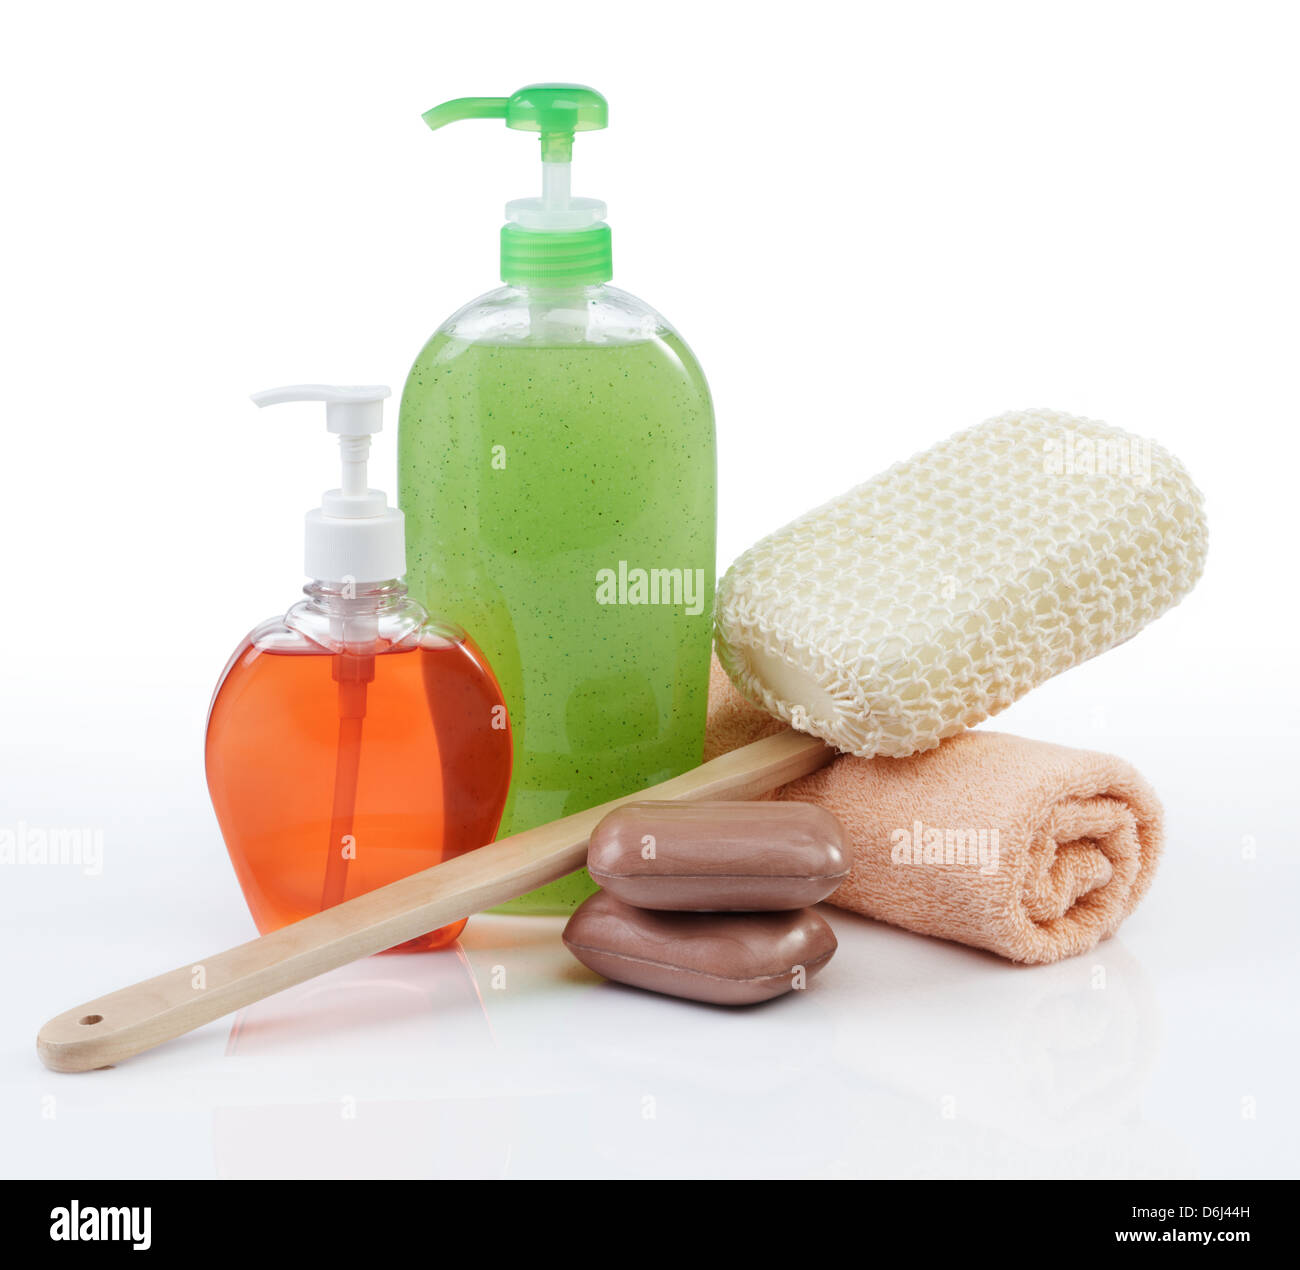 different kind of toiletries on white background - Stock Image